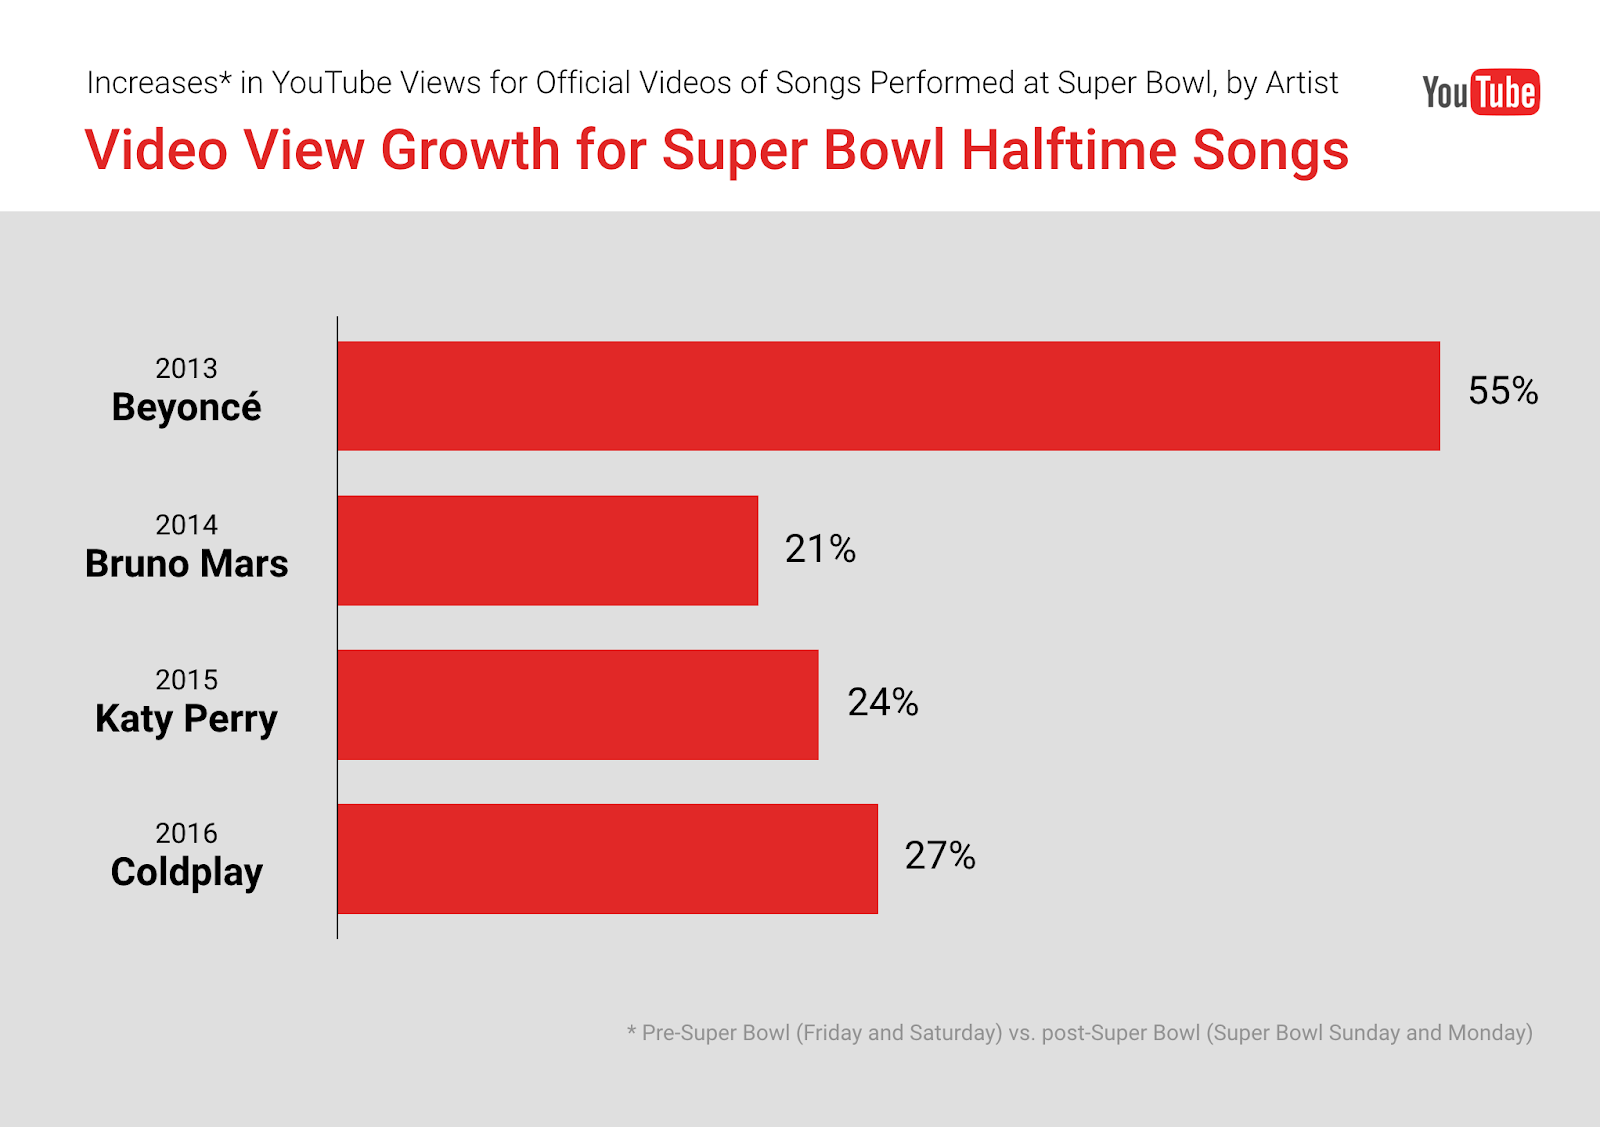 Youtube - Among The Past Four Years Headliners Coldplay Katy Perry Bruno Mars And Beyonc It Was Beyonc Who Had The Greatest Increase In Youtube Video Views